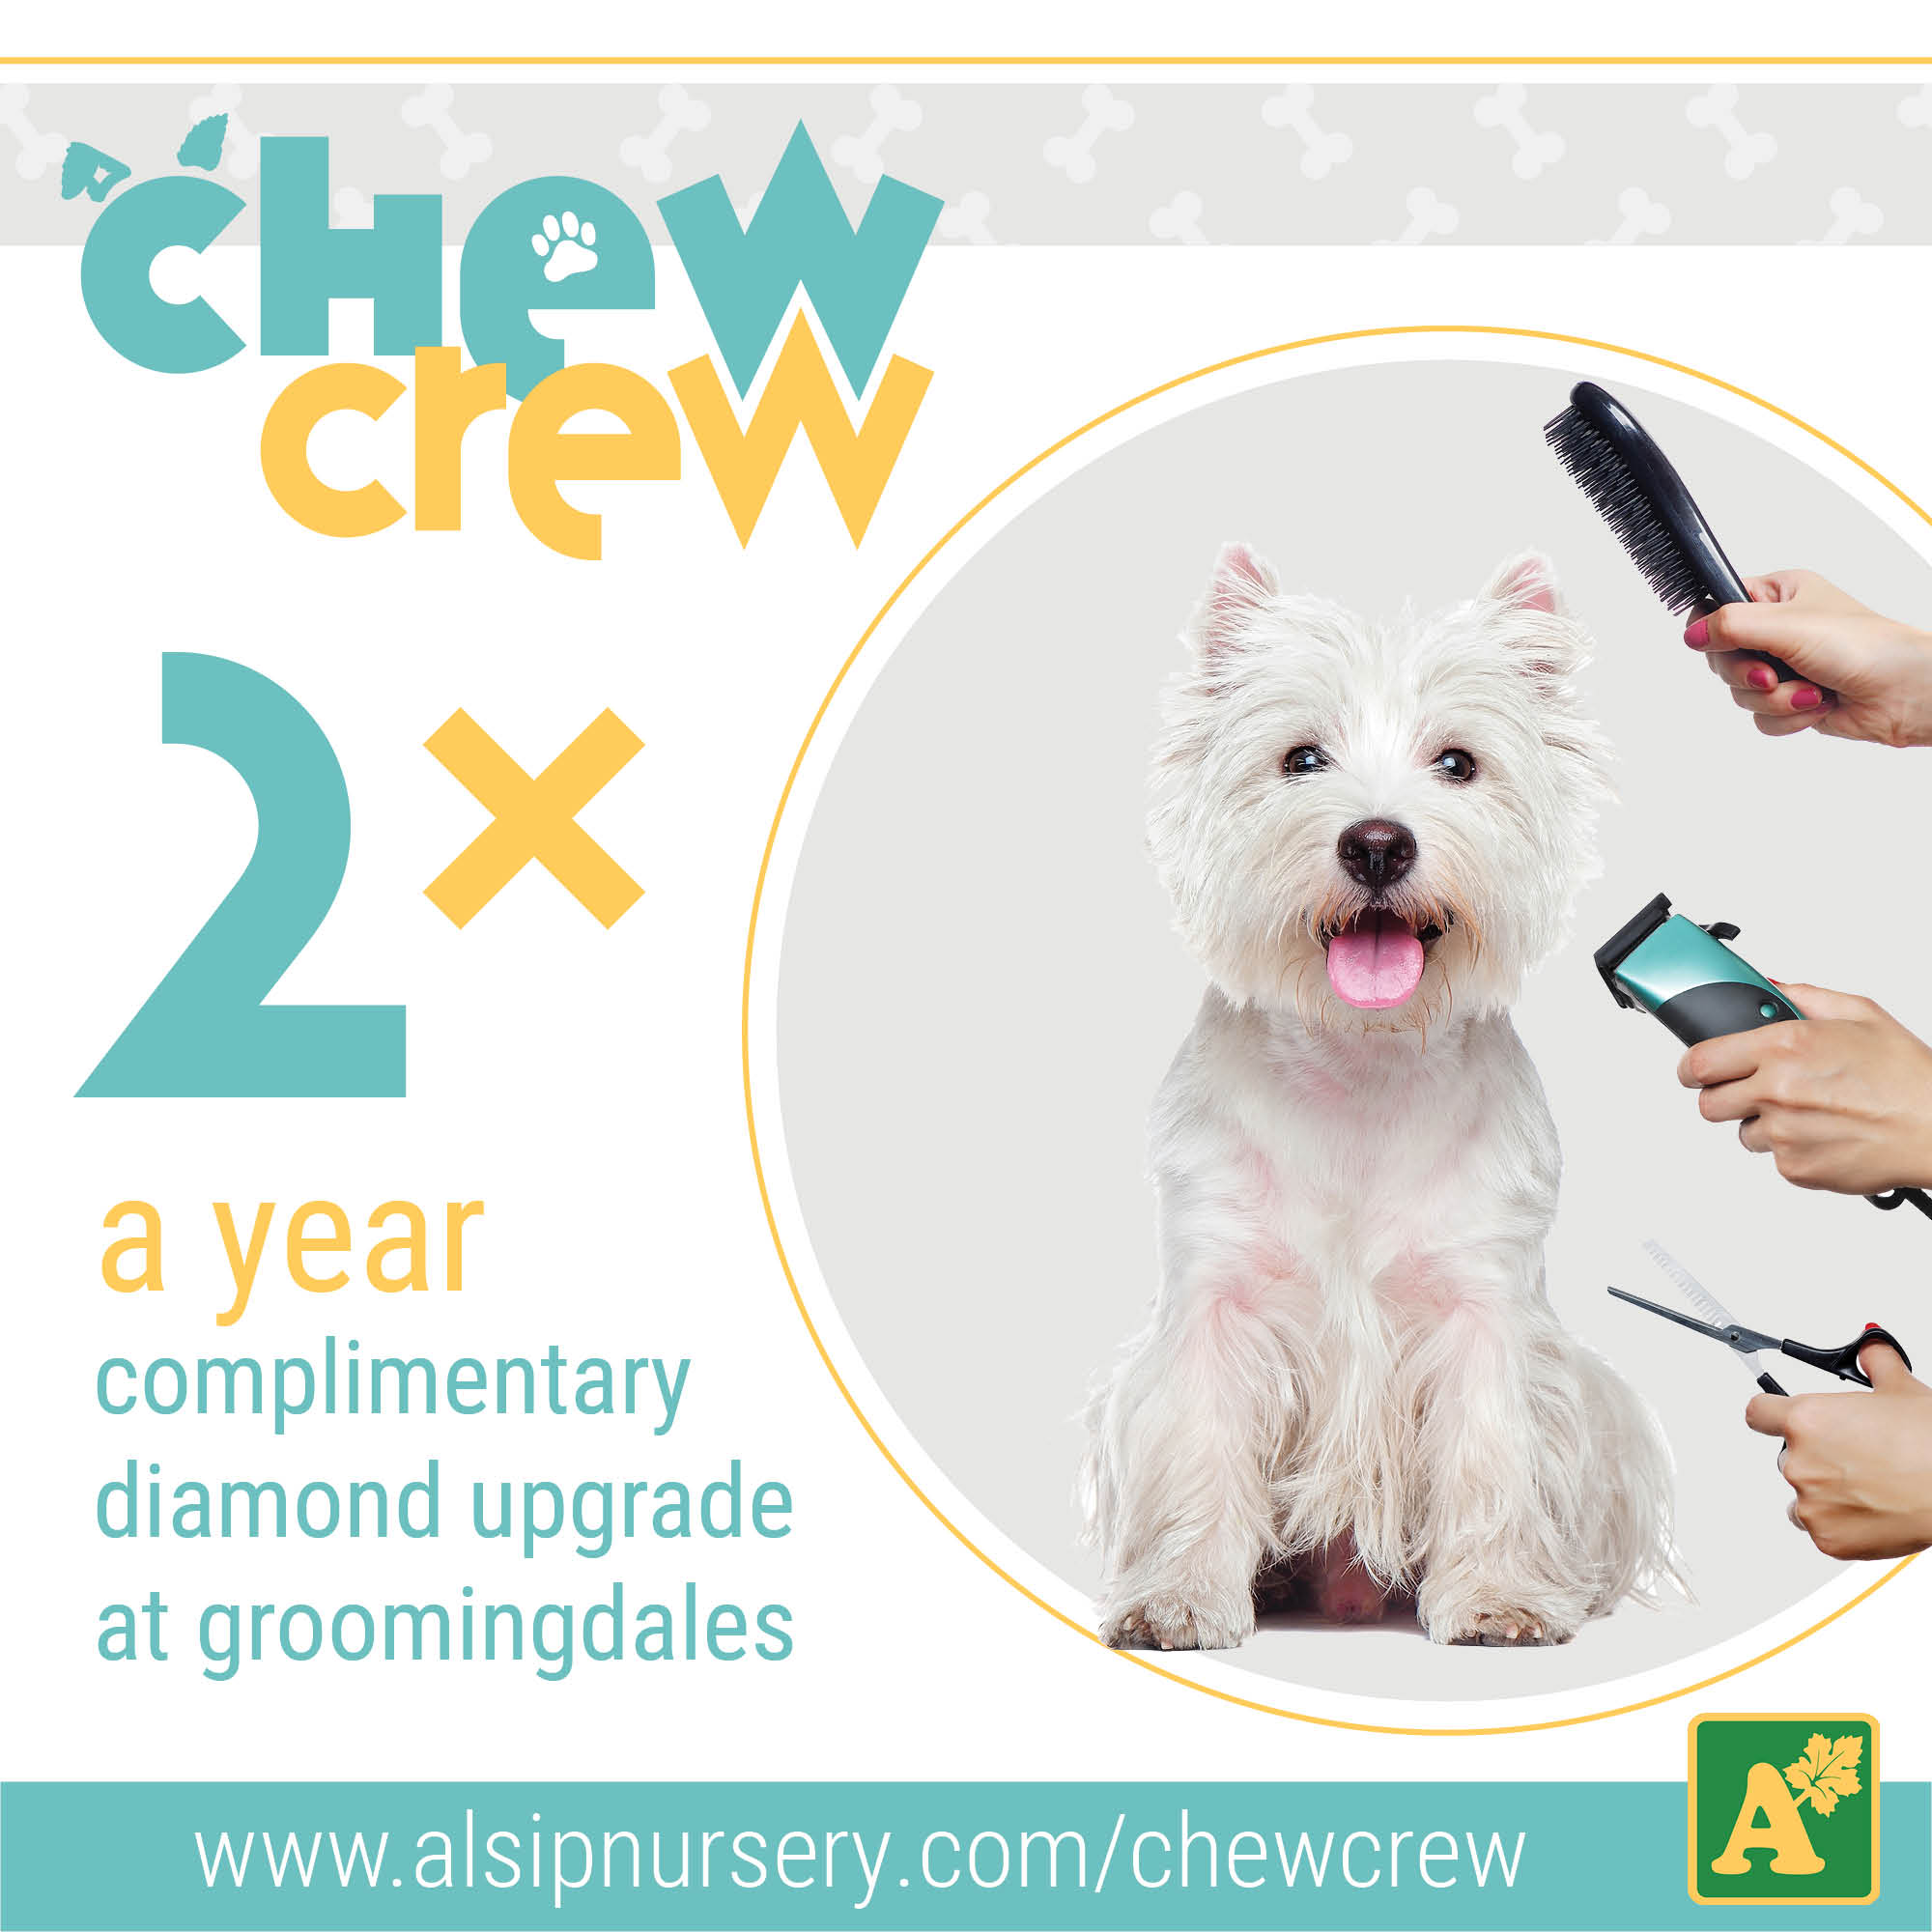 Chew Crew Perks - Diamond Upgrades for Groomingdales Pet Salon